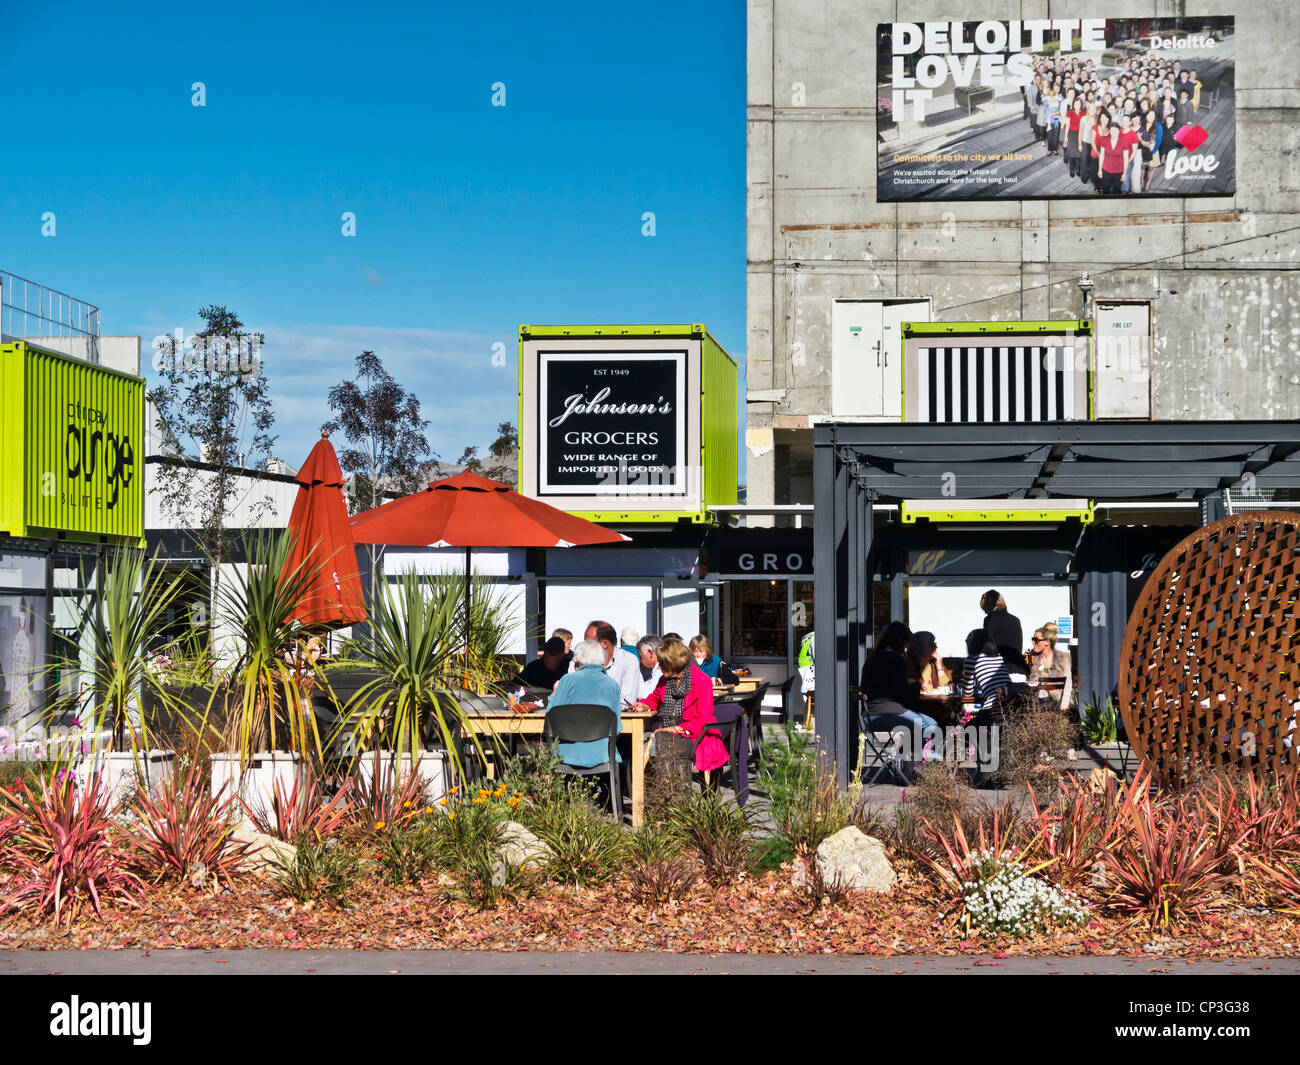 Cafe am Container Mall Christchurch, Neuseeland. Stockbild